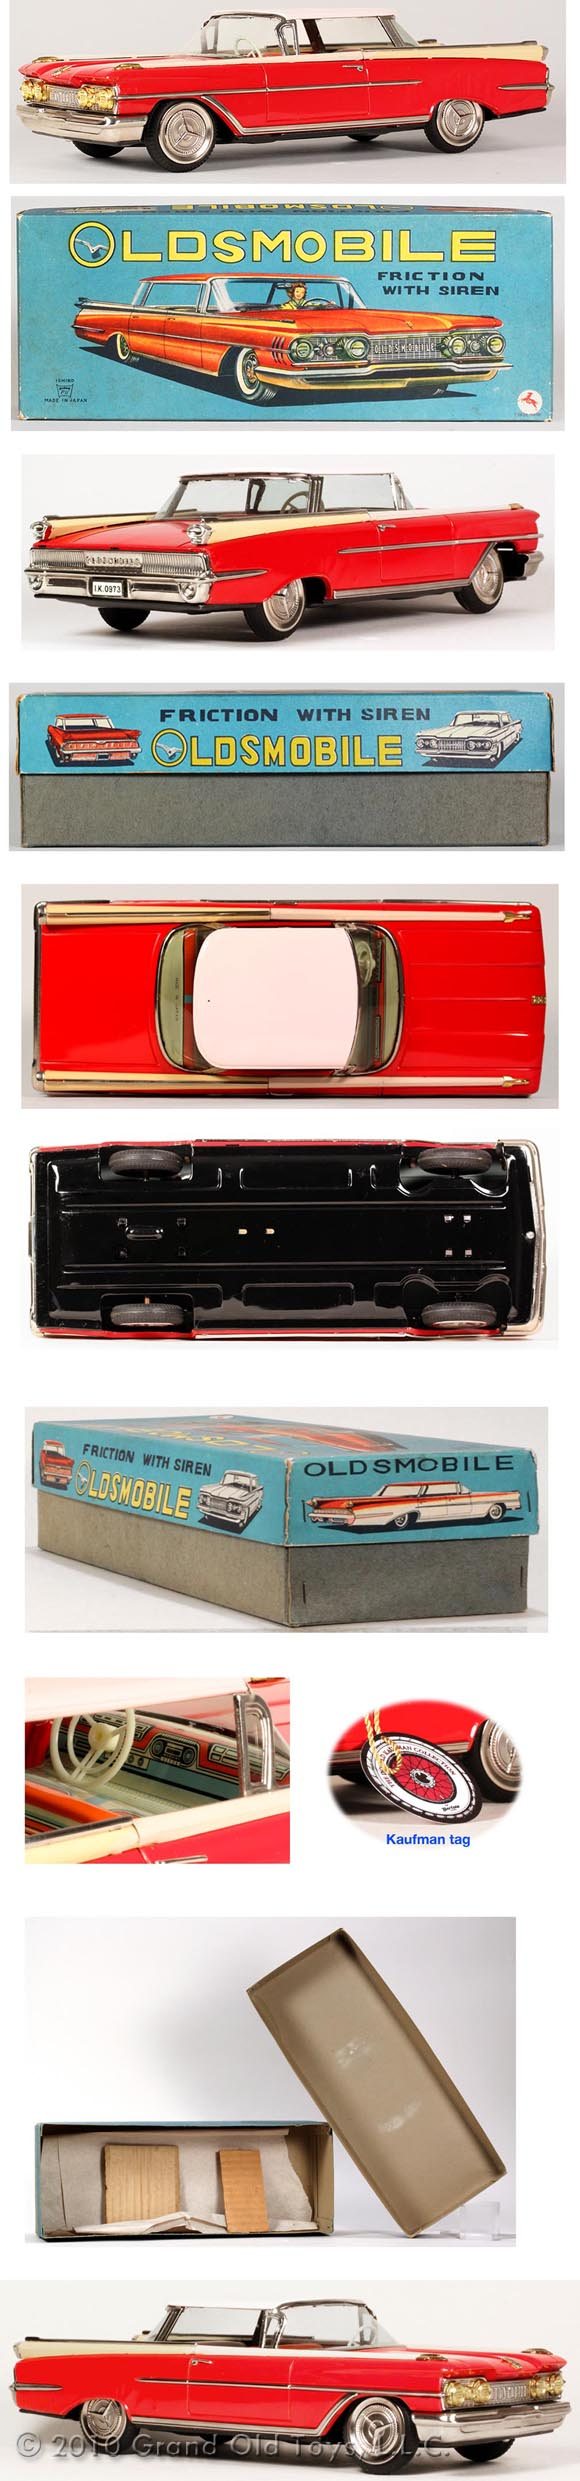 1959 Ichiko, Oldsmobile-88 2dr. Hardtop In Original Box